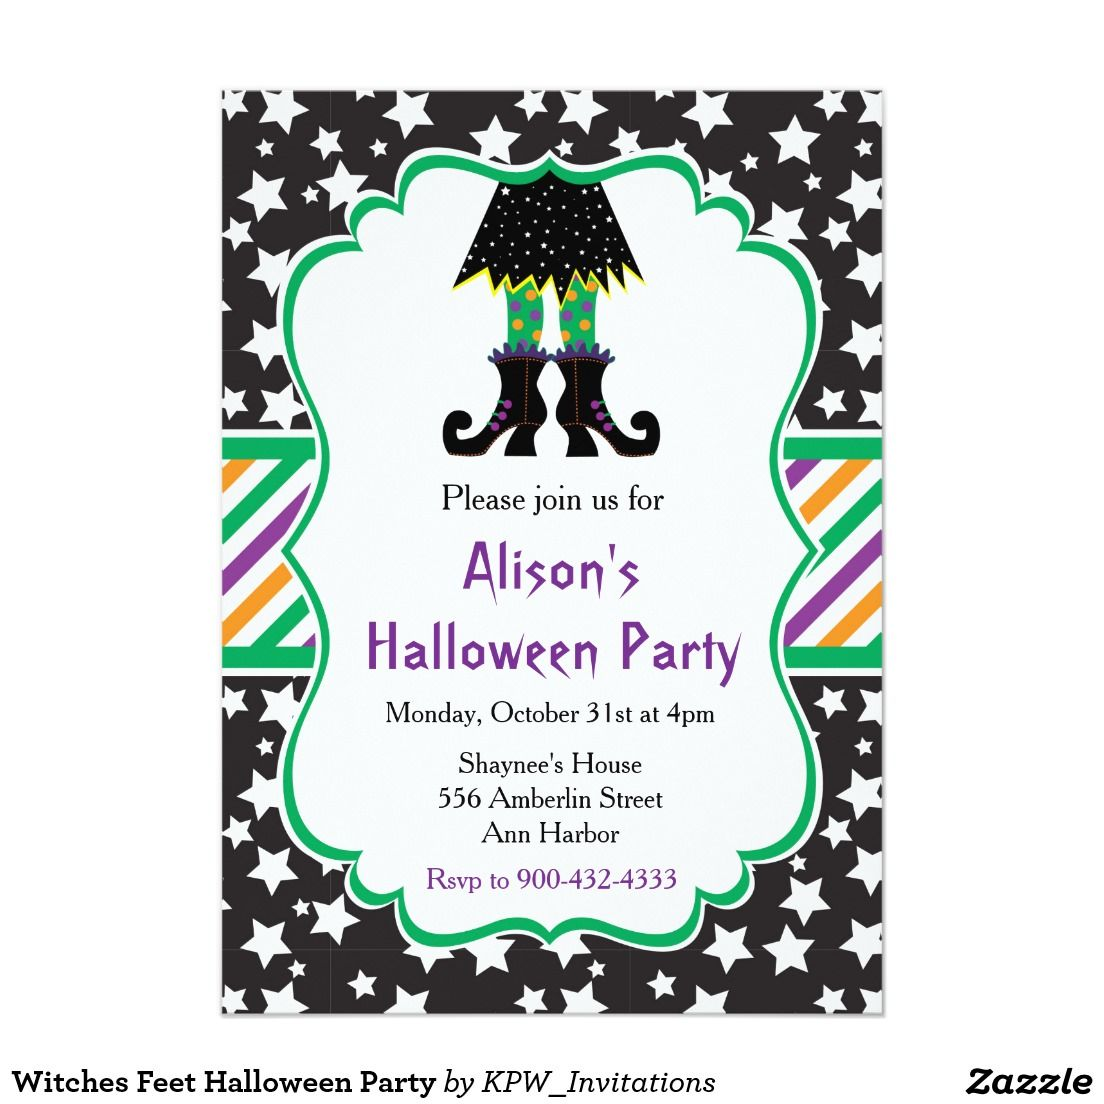 Witches Feet Halloween Party Card | Halloween Invitations | Pinterest